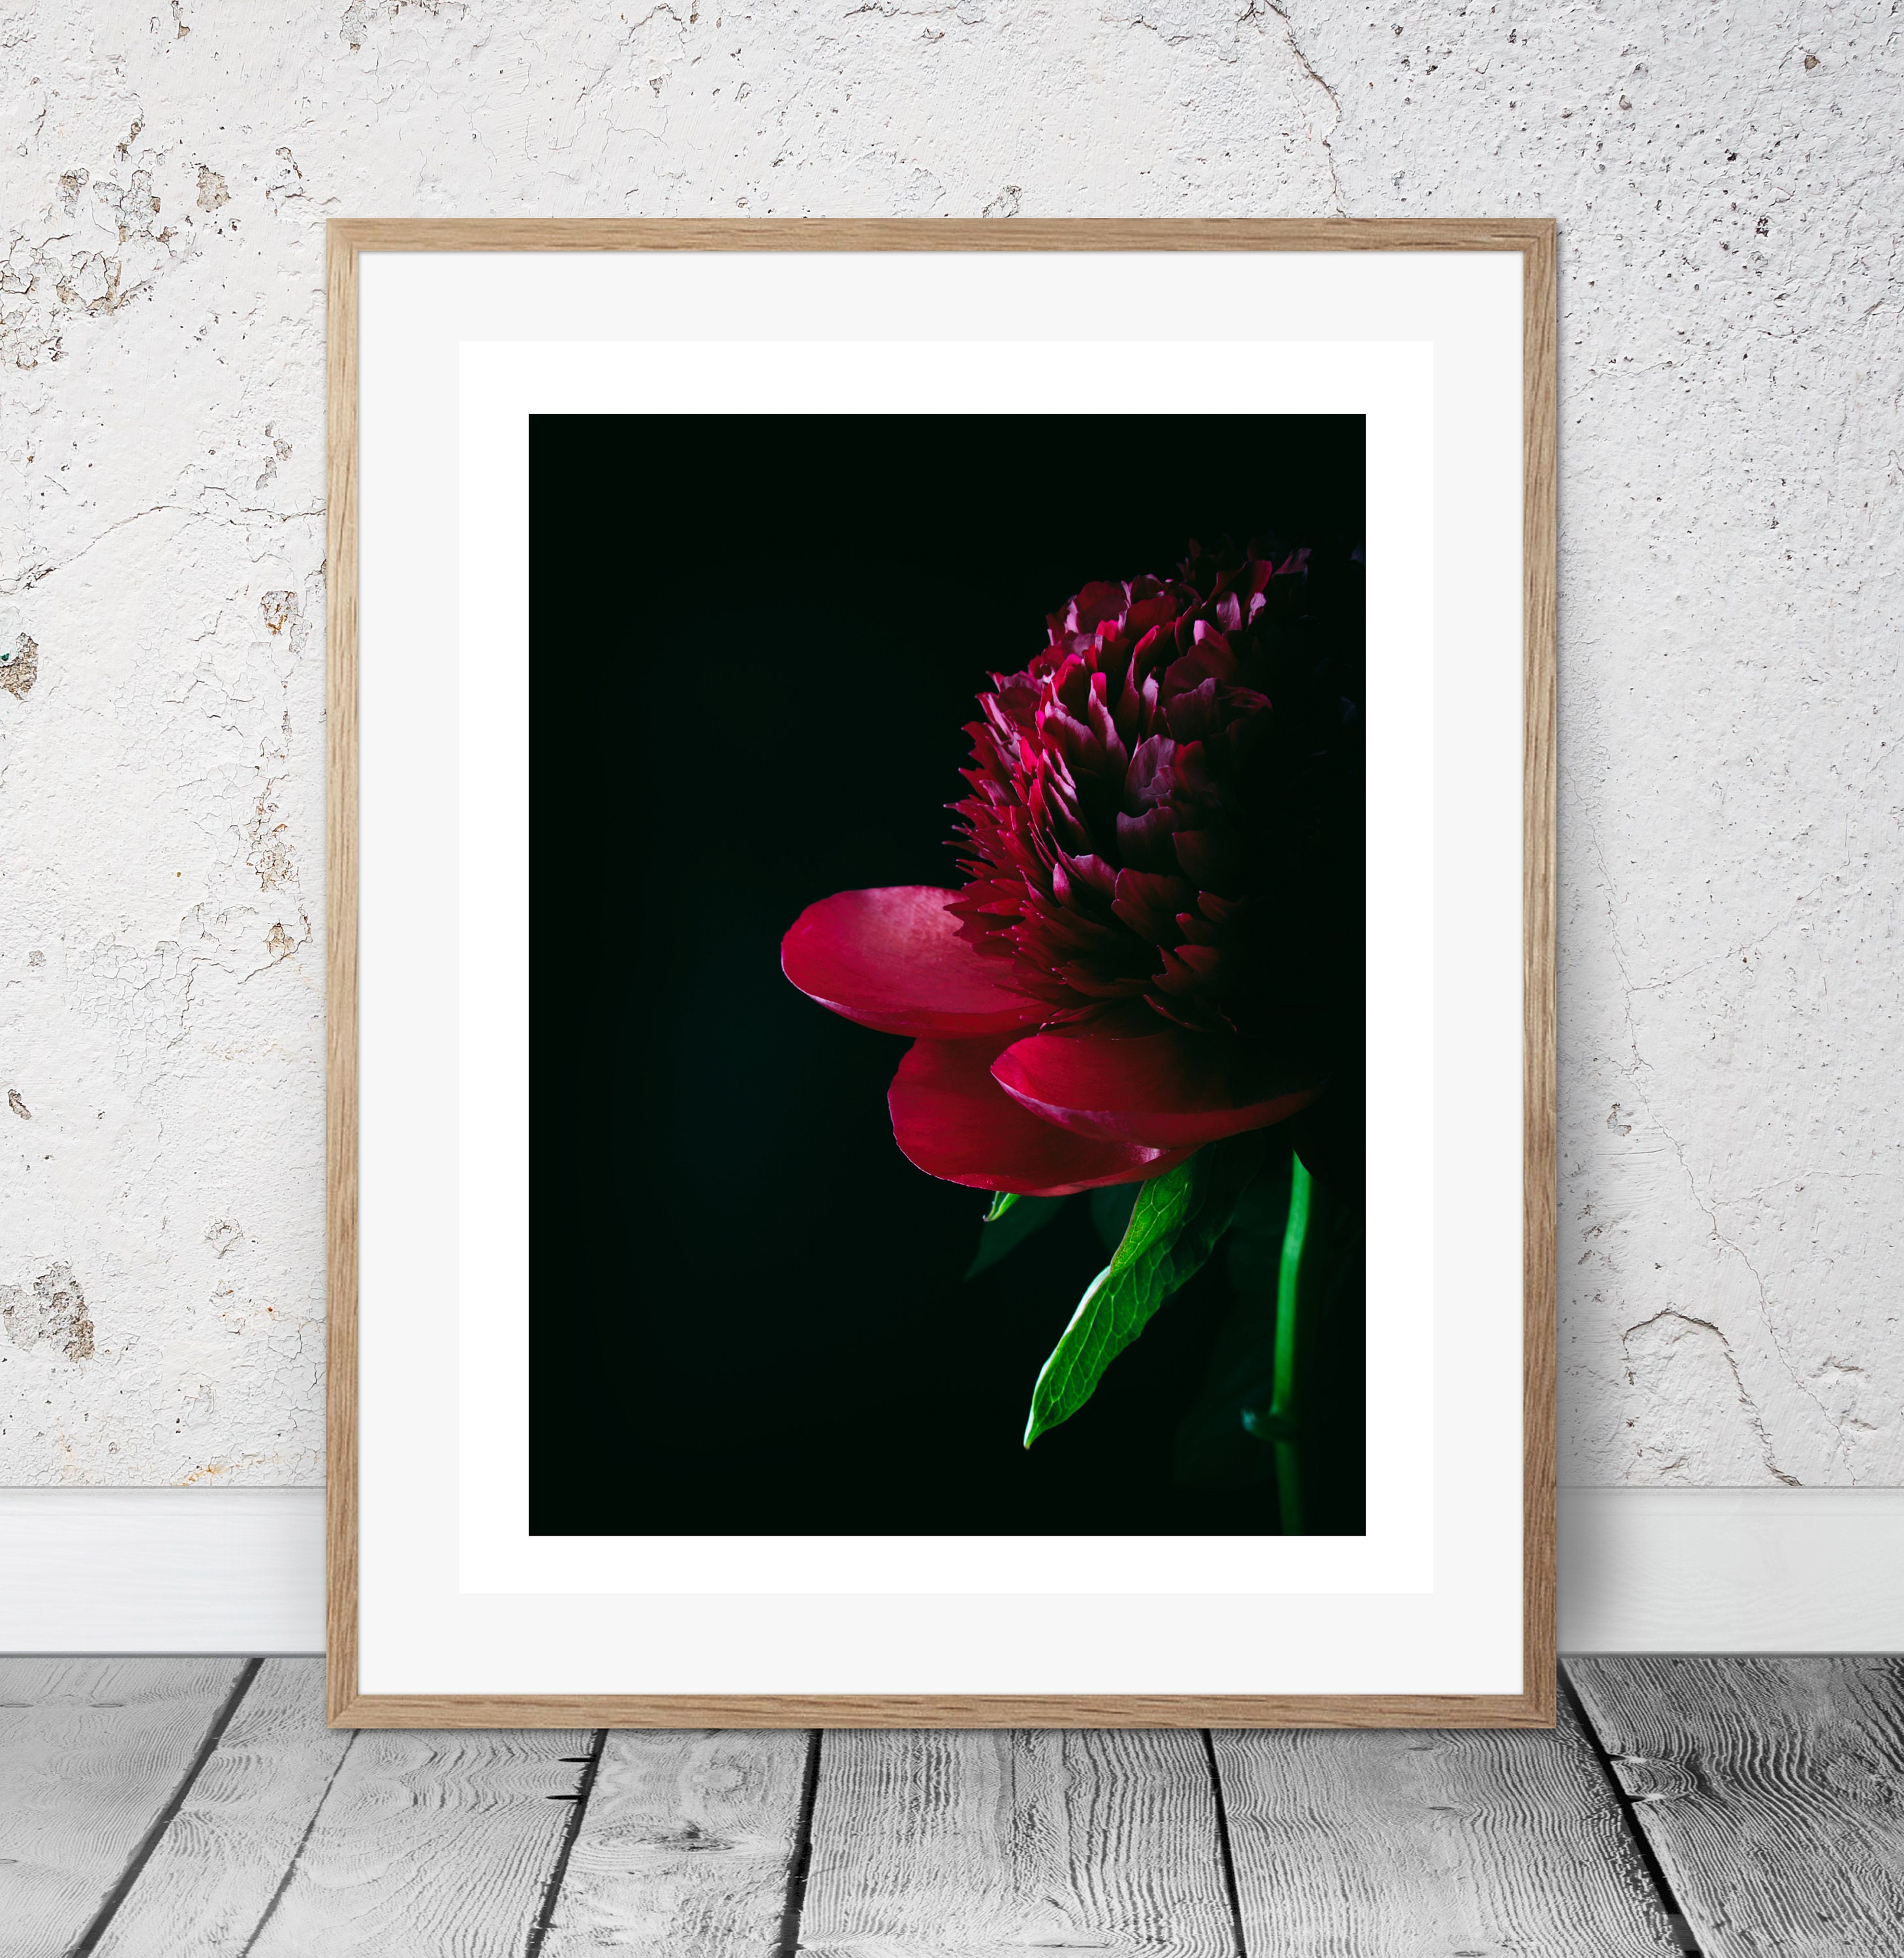 Red Peony Photo, Peony Art Print, Paris Decor Bedroom, Peony Wall Art, Paris  Wall Decor, Cafe Art Decor, Gallery Wall Photo, Rose